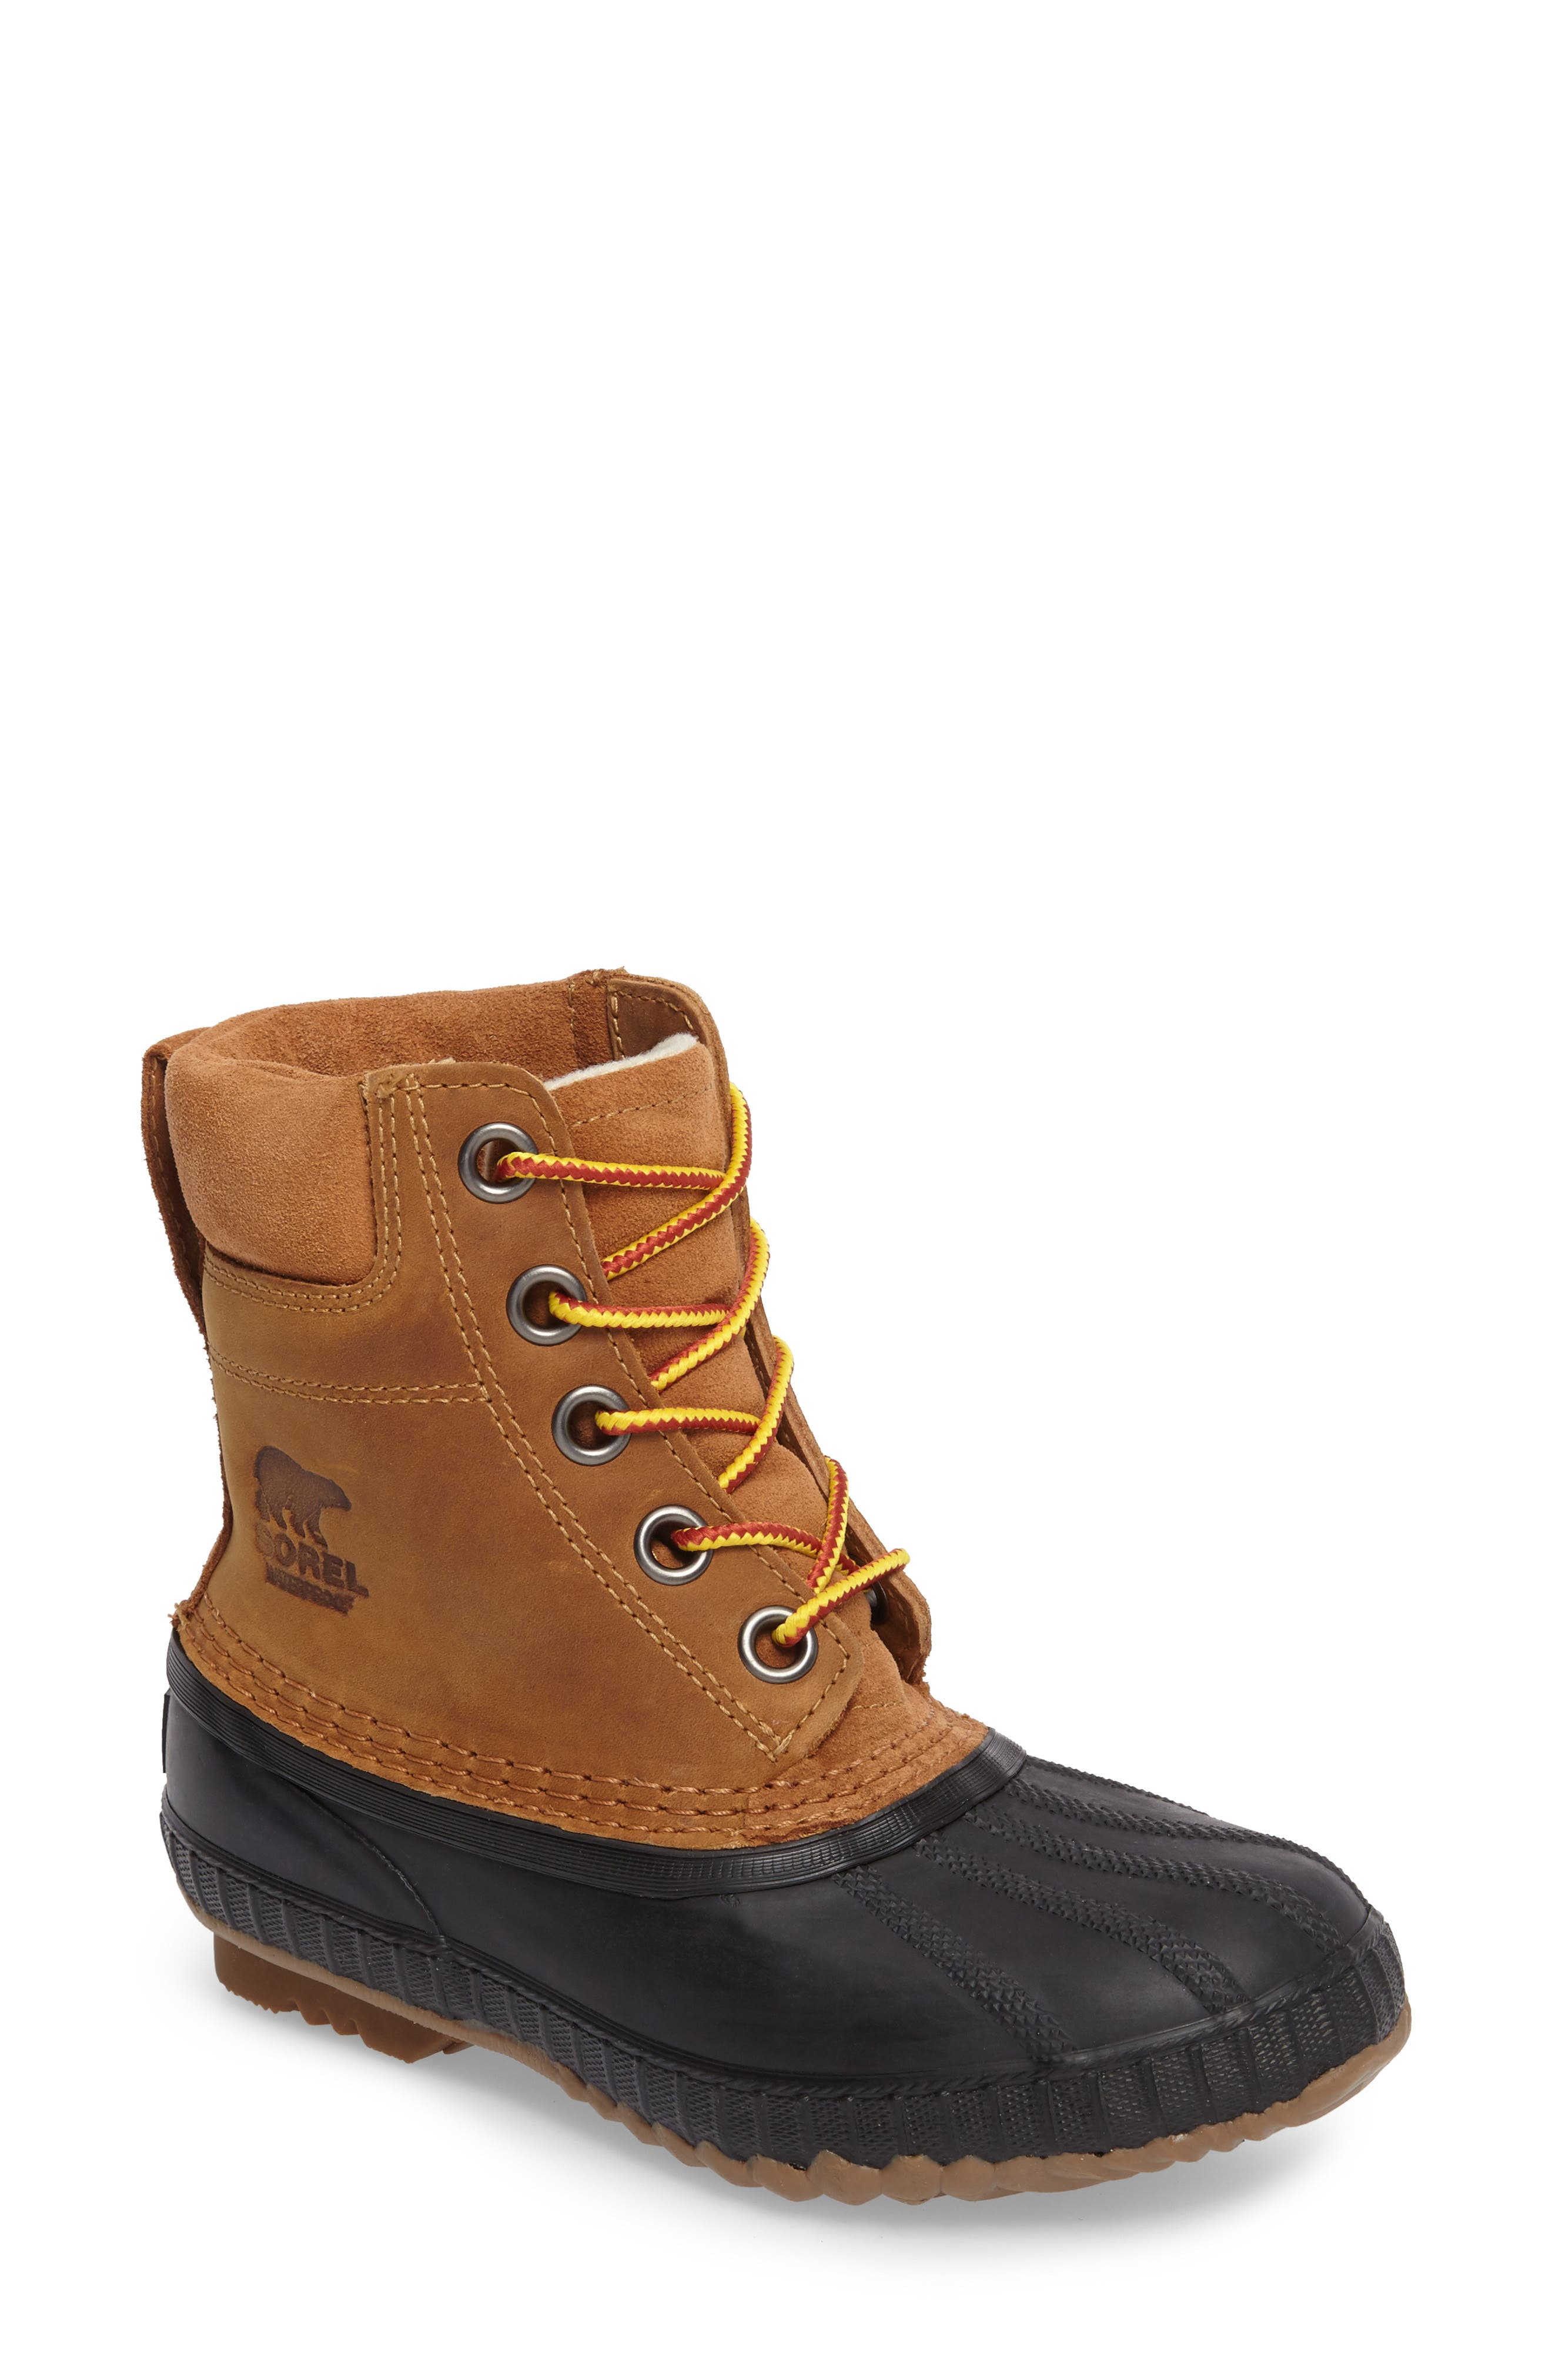 Cheyanne<sup>™</sup> II Waterproof Boot,                         Main,                         color, Elk Black